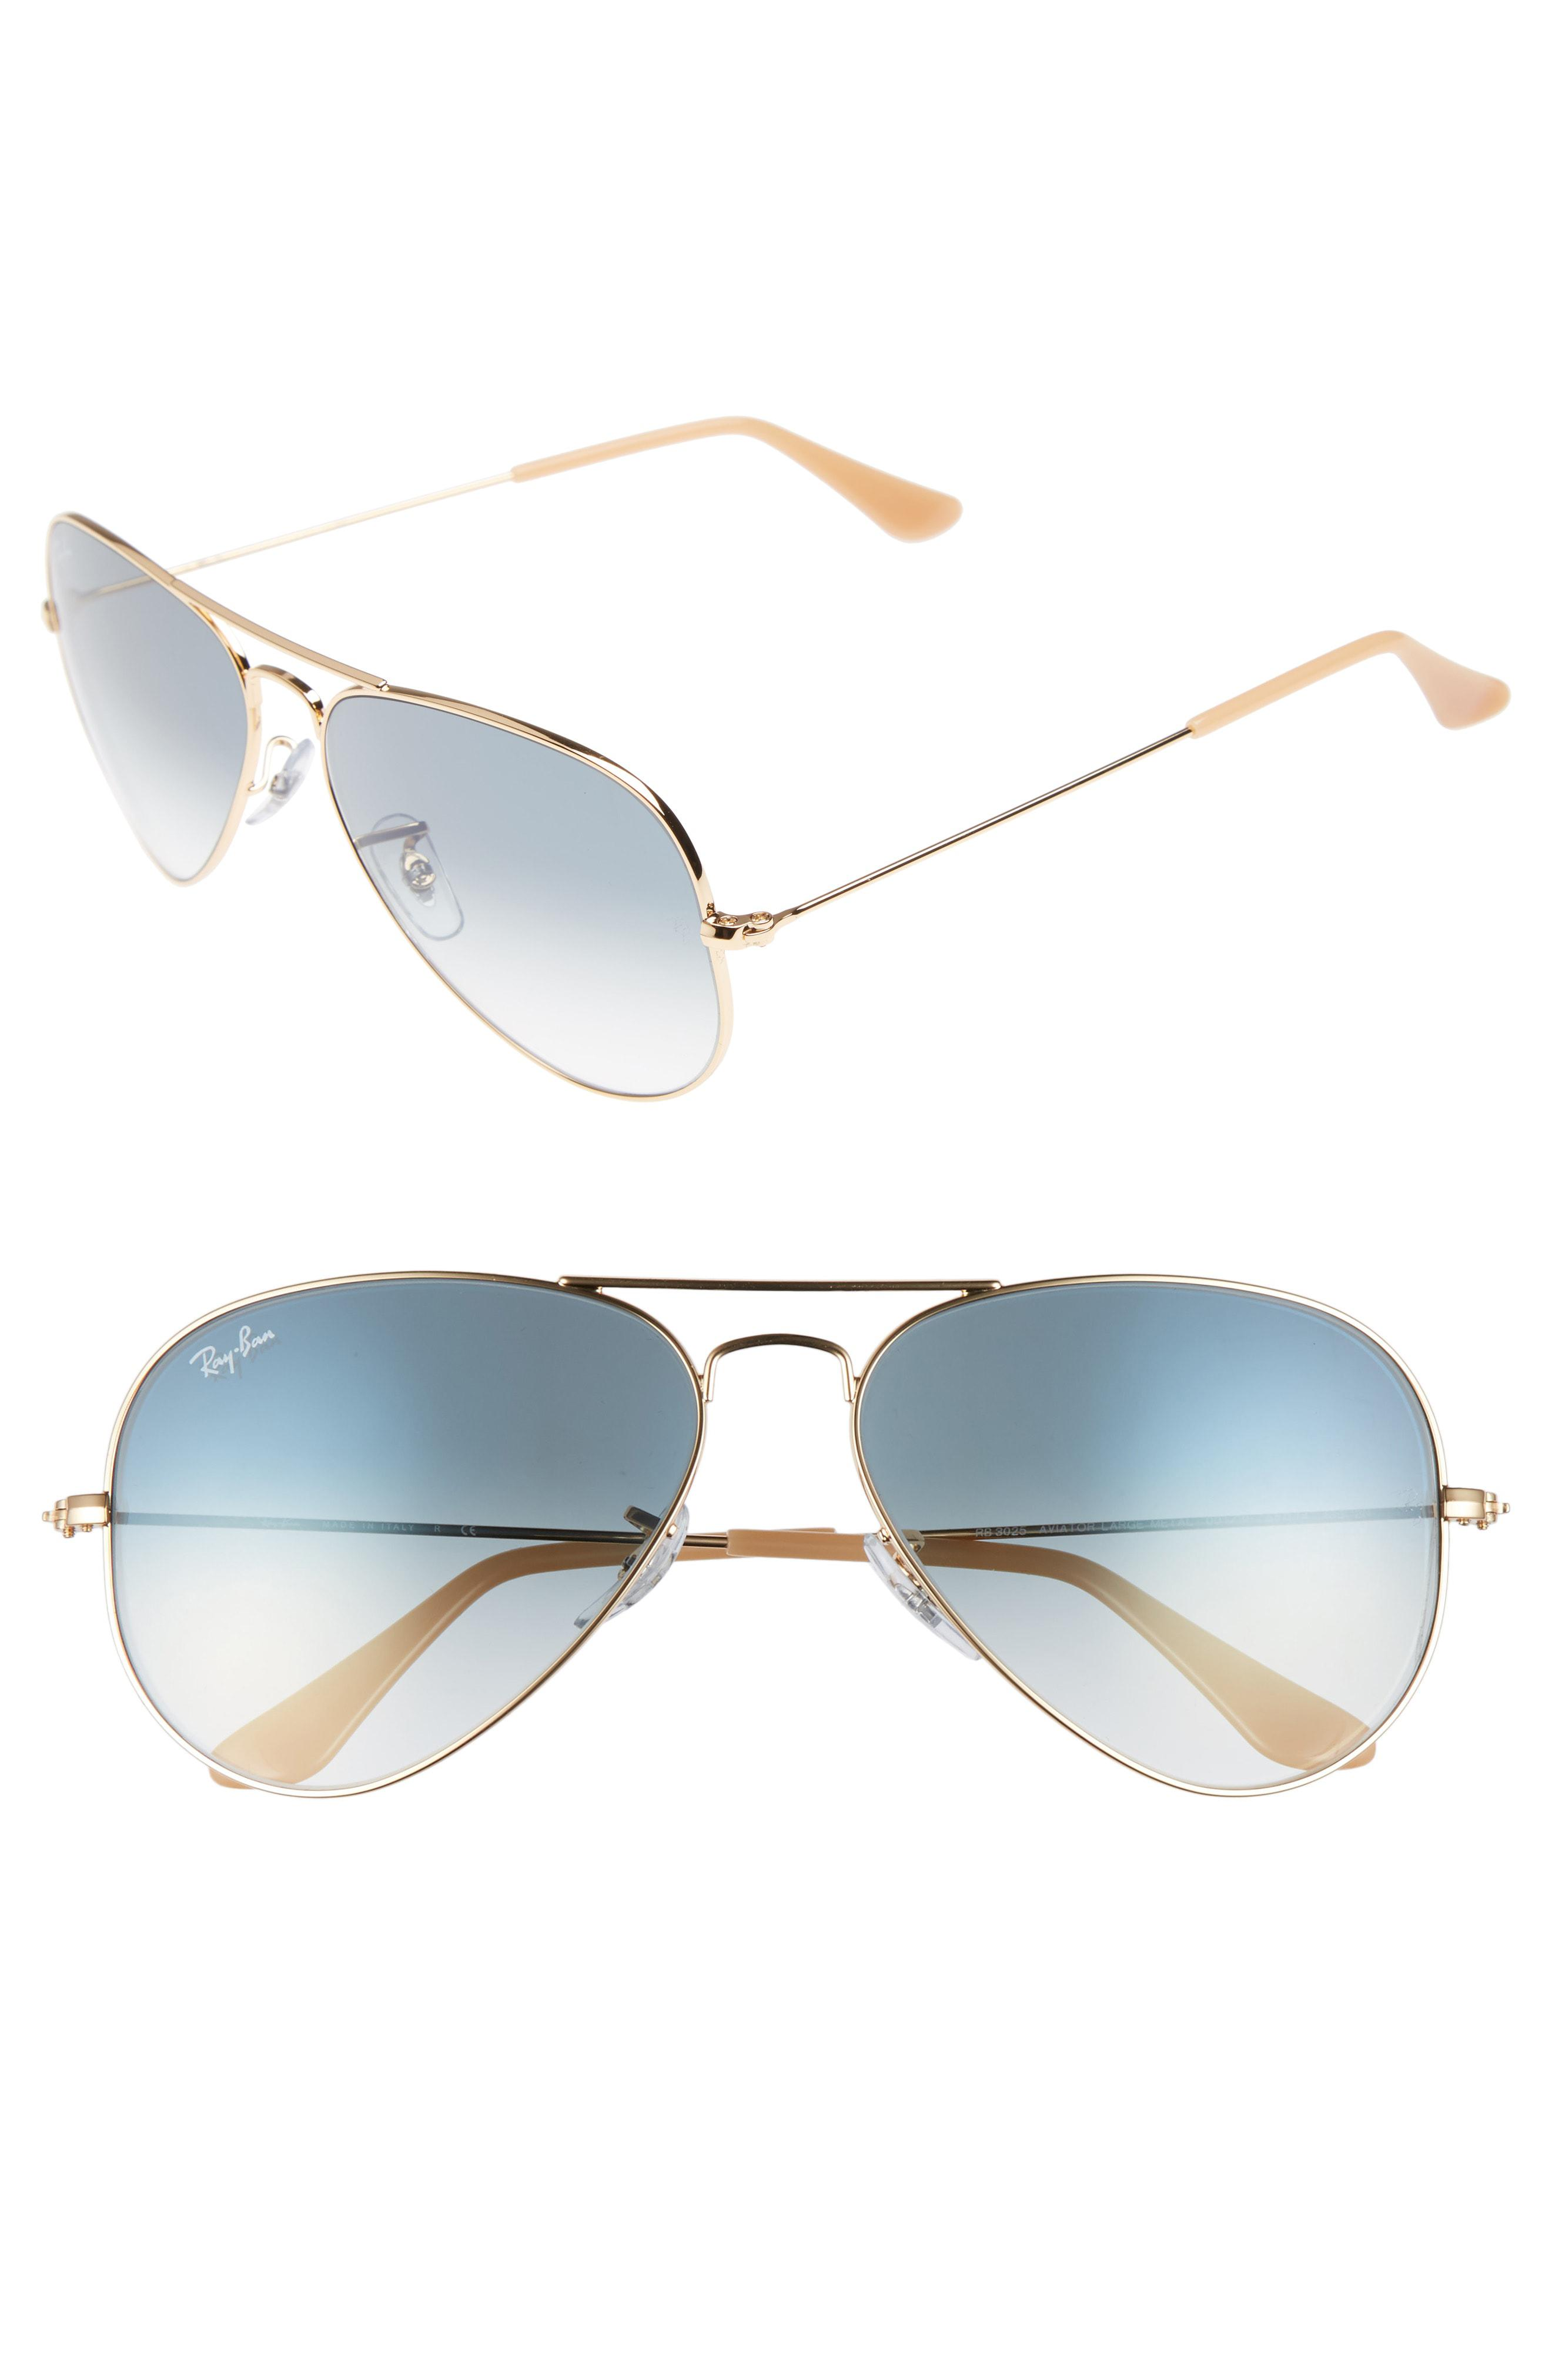 710d400201925 Lyst - Ray-Ban Original Aviator 58mm Sunglasses in Blue for Men